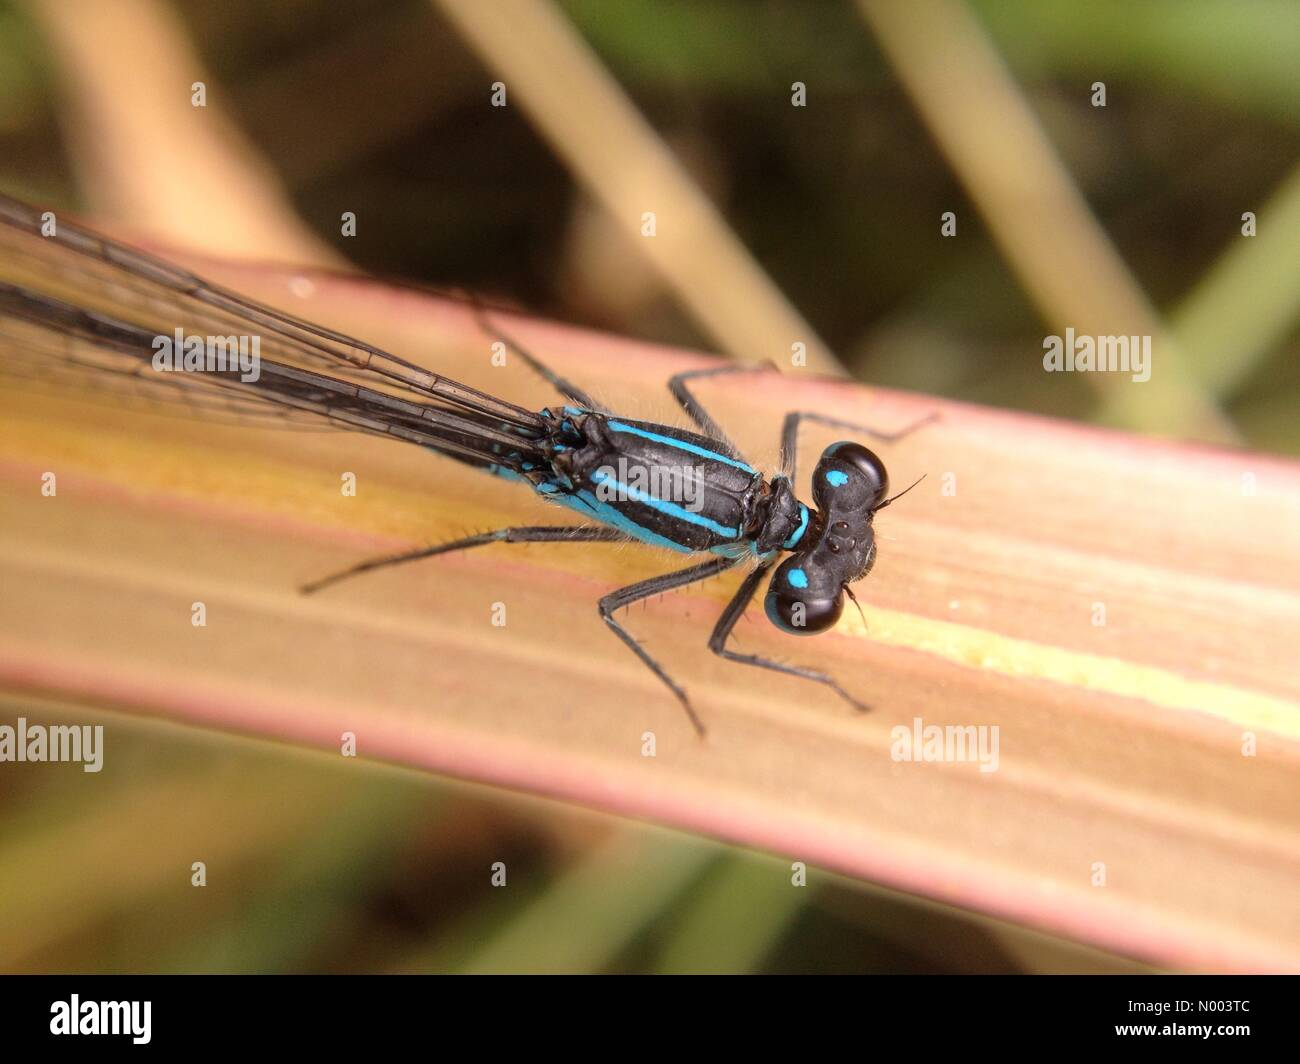 UK weather, insects in West Yorkshire. A warm but cloudy day gave insects a chance to be out working. This damselfly - Stock Image